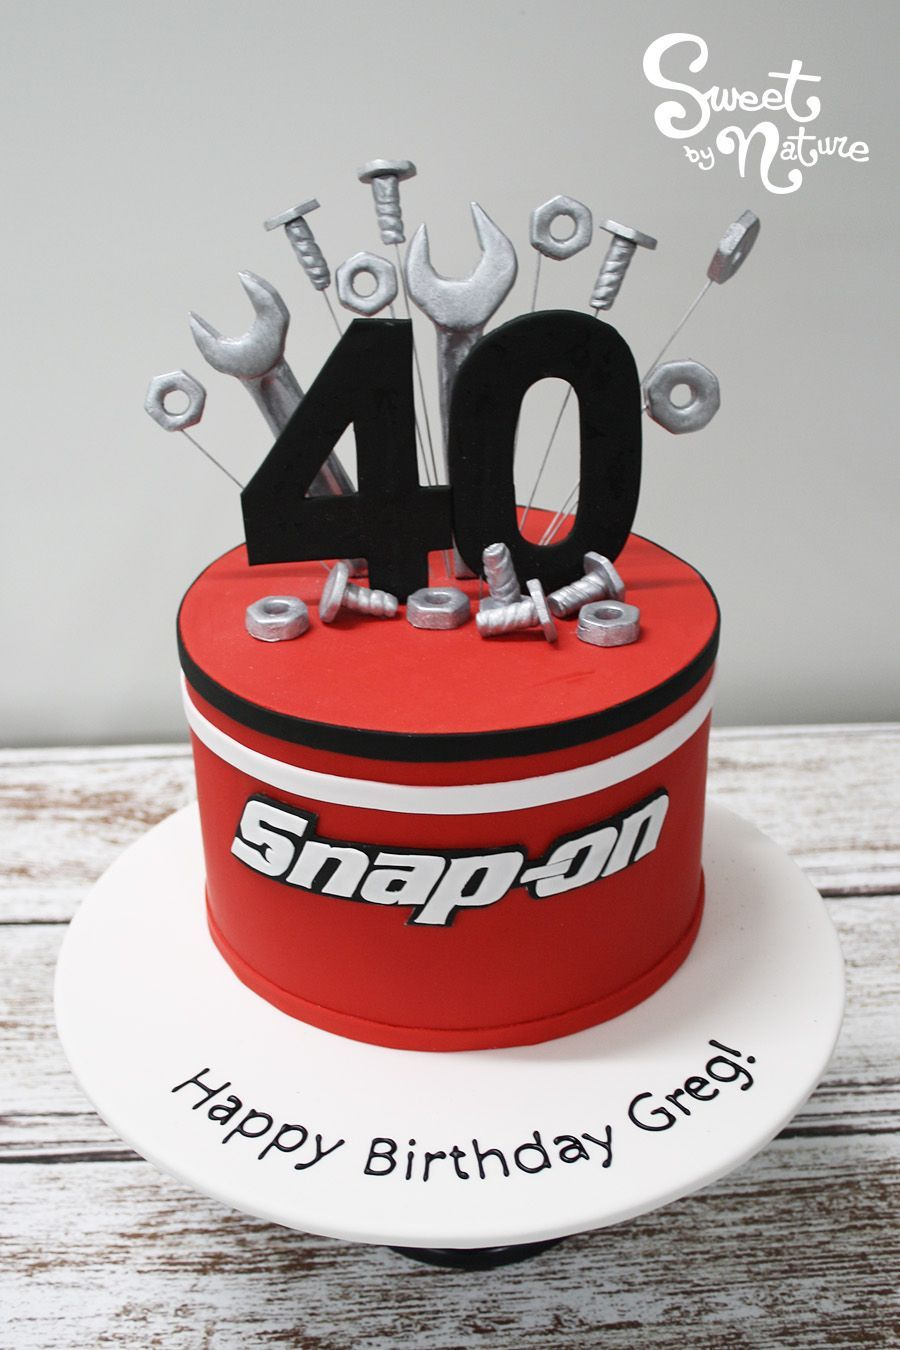 Happy 40th Birthday Greg We hope you enjoyed your tool themed